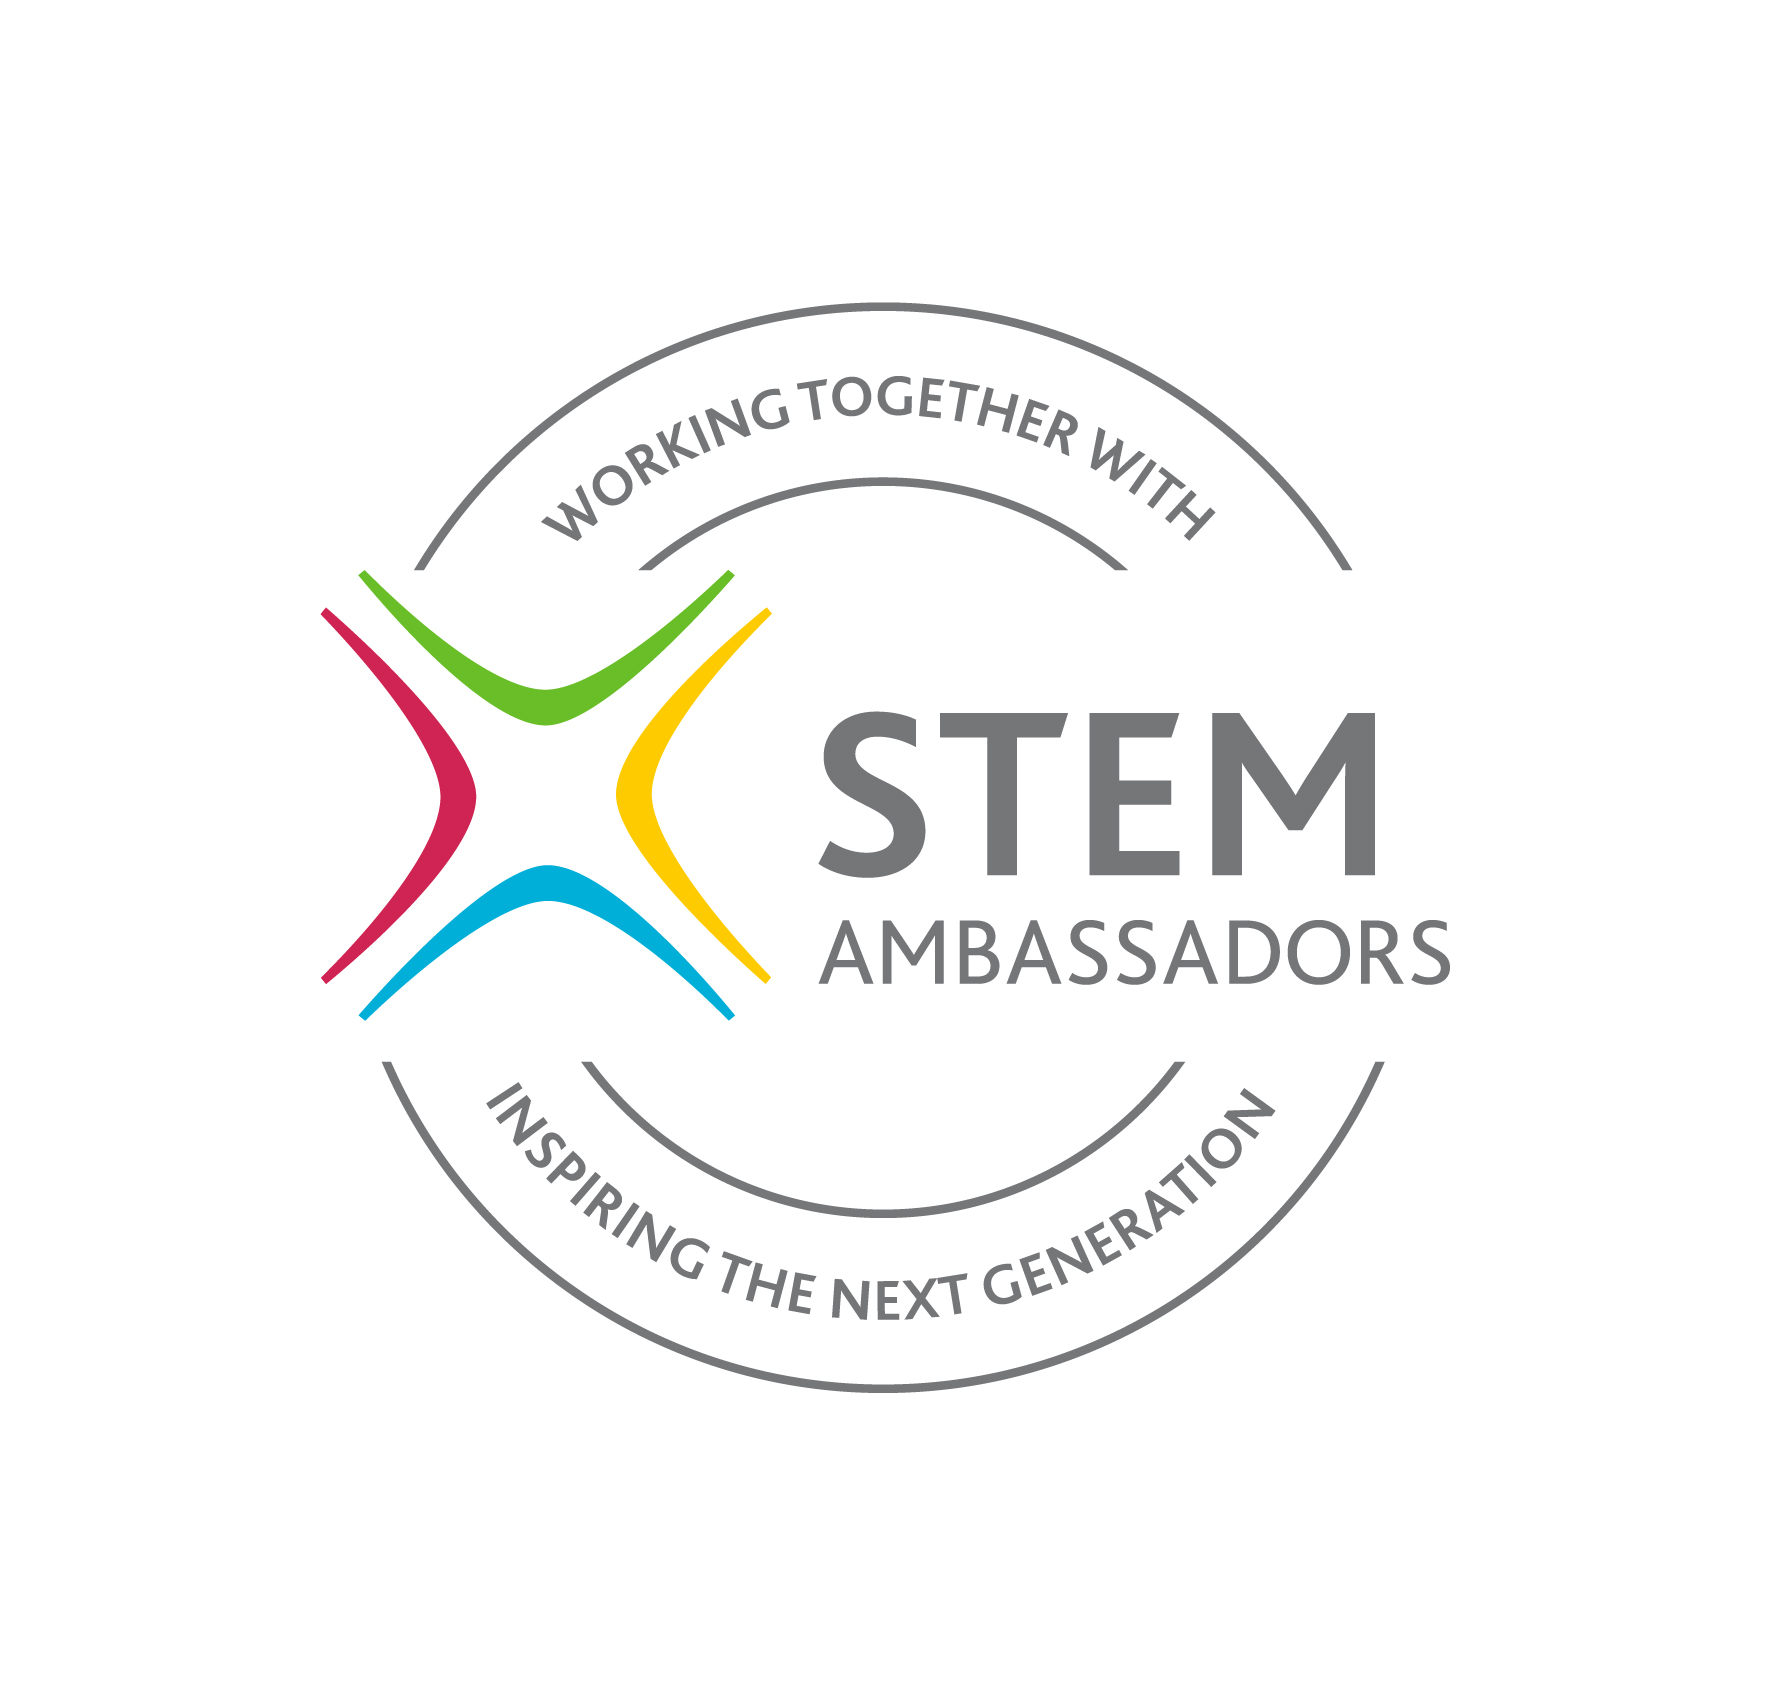 STEM Ambassadors Working together Colour